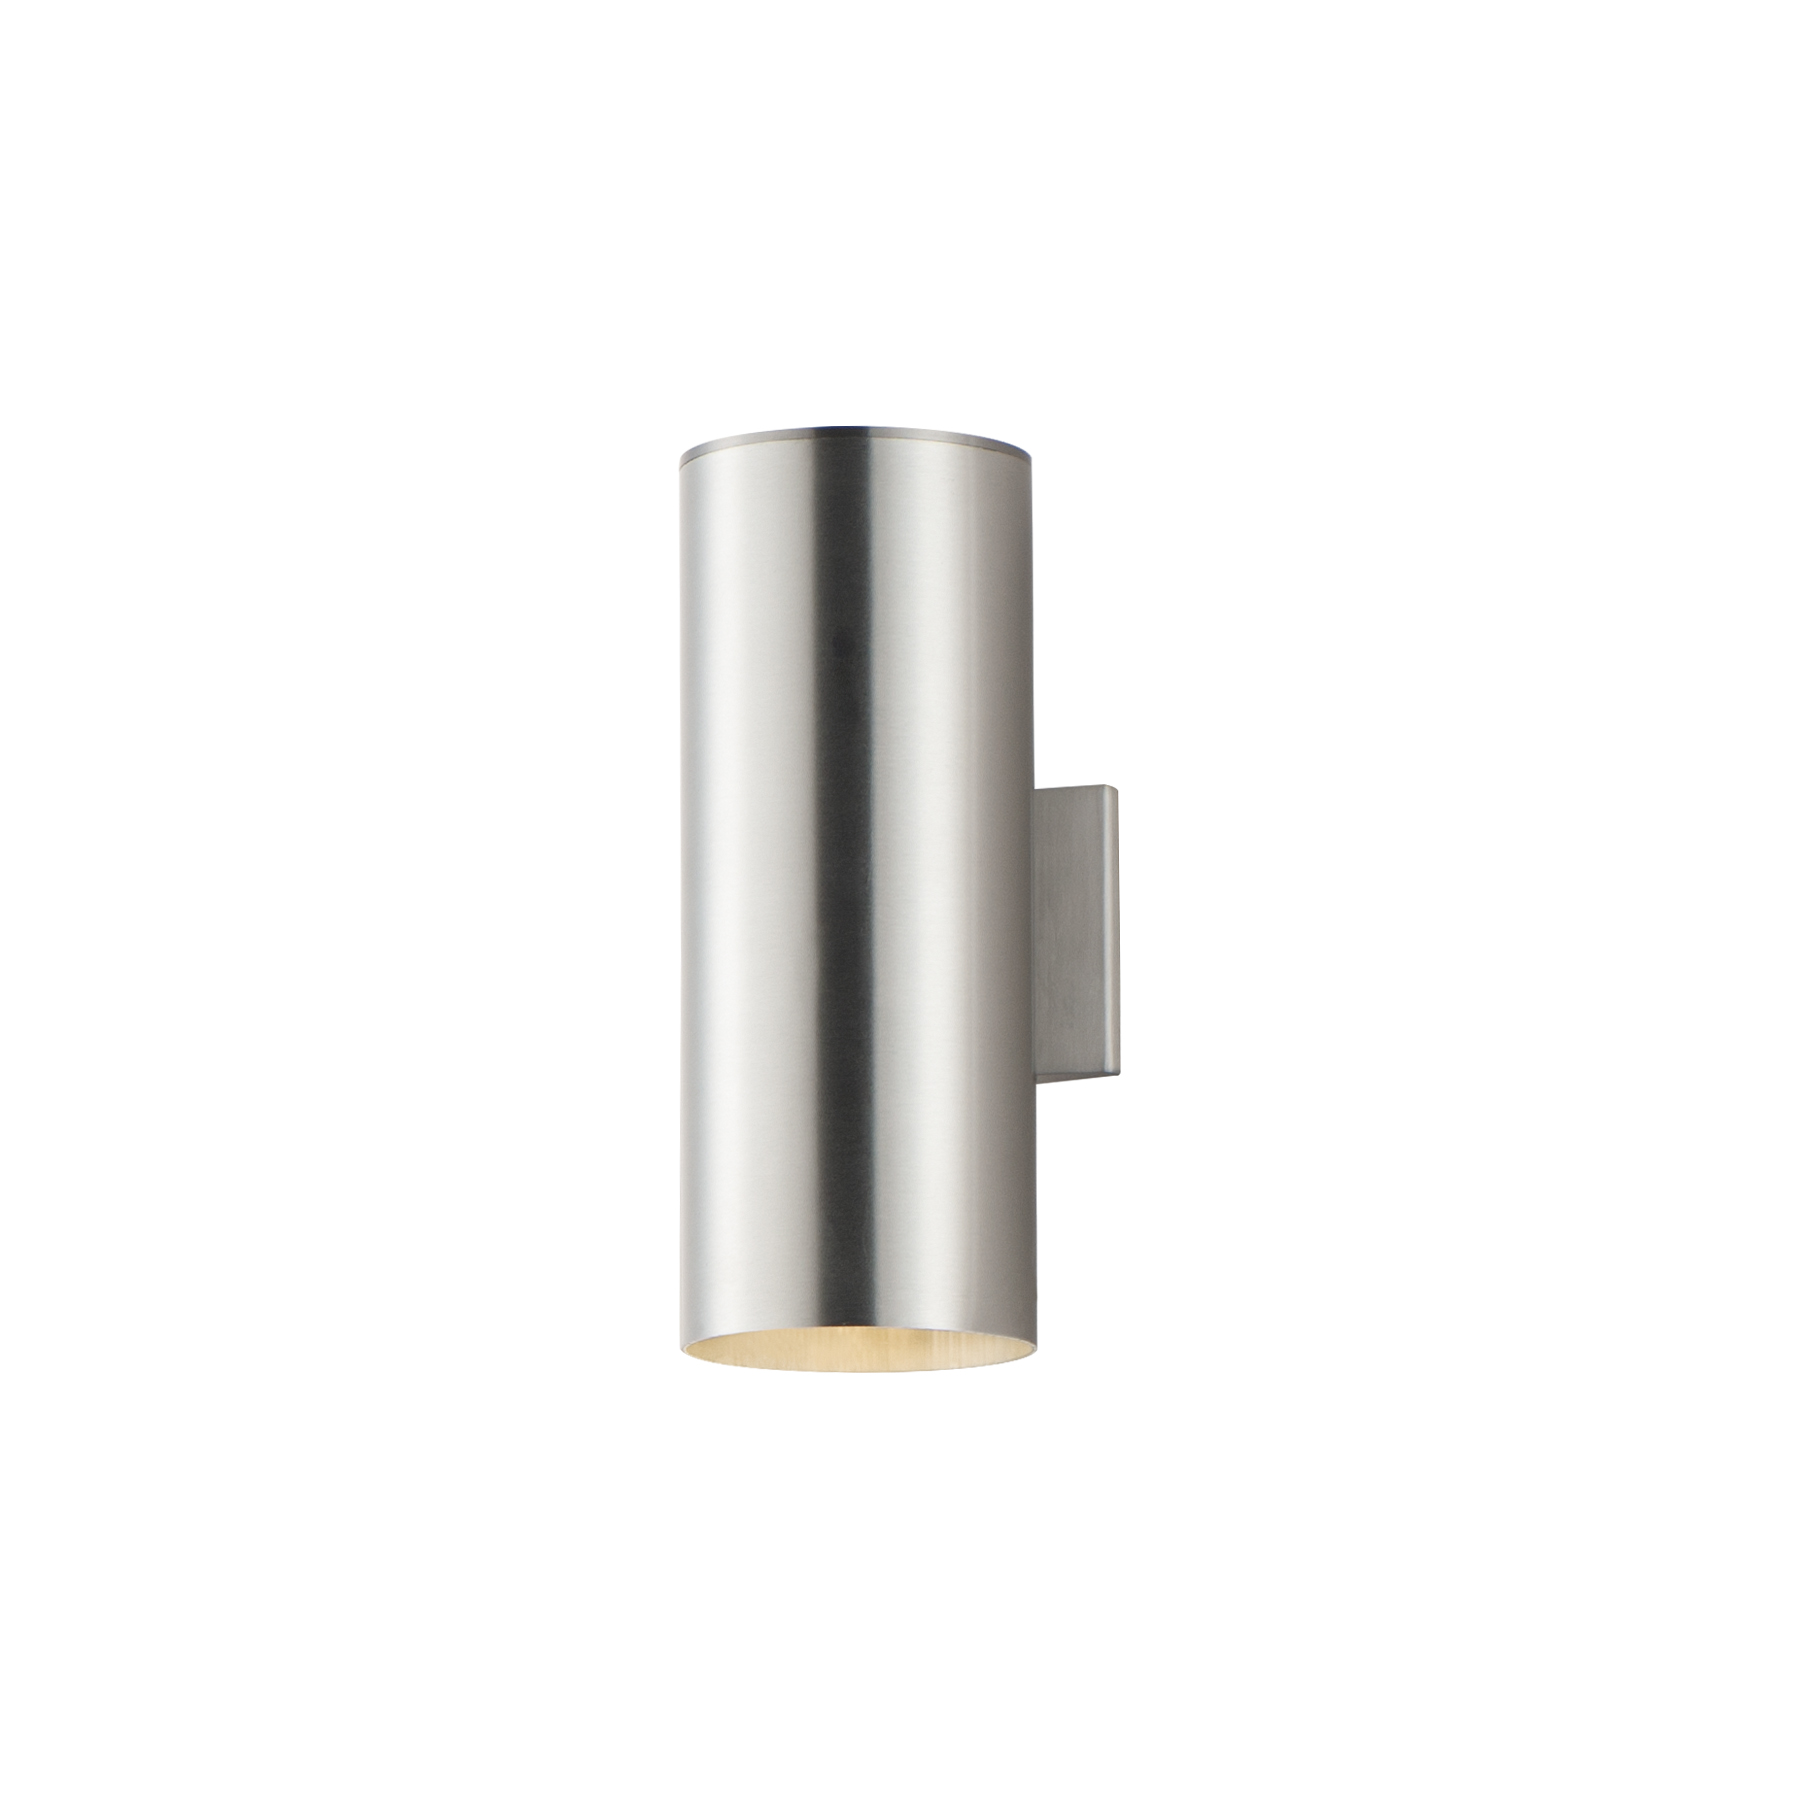 Outpost 2-Light 15-inch LED Outdoor Wall Sconce | Maxim Lighting